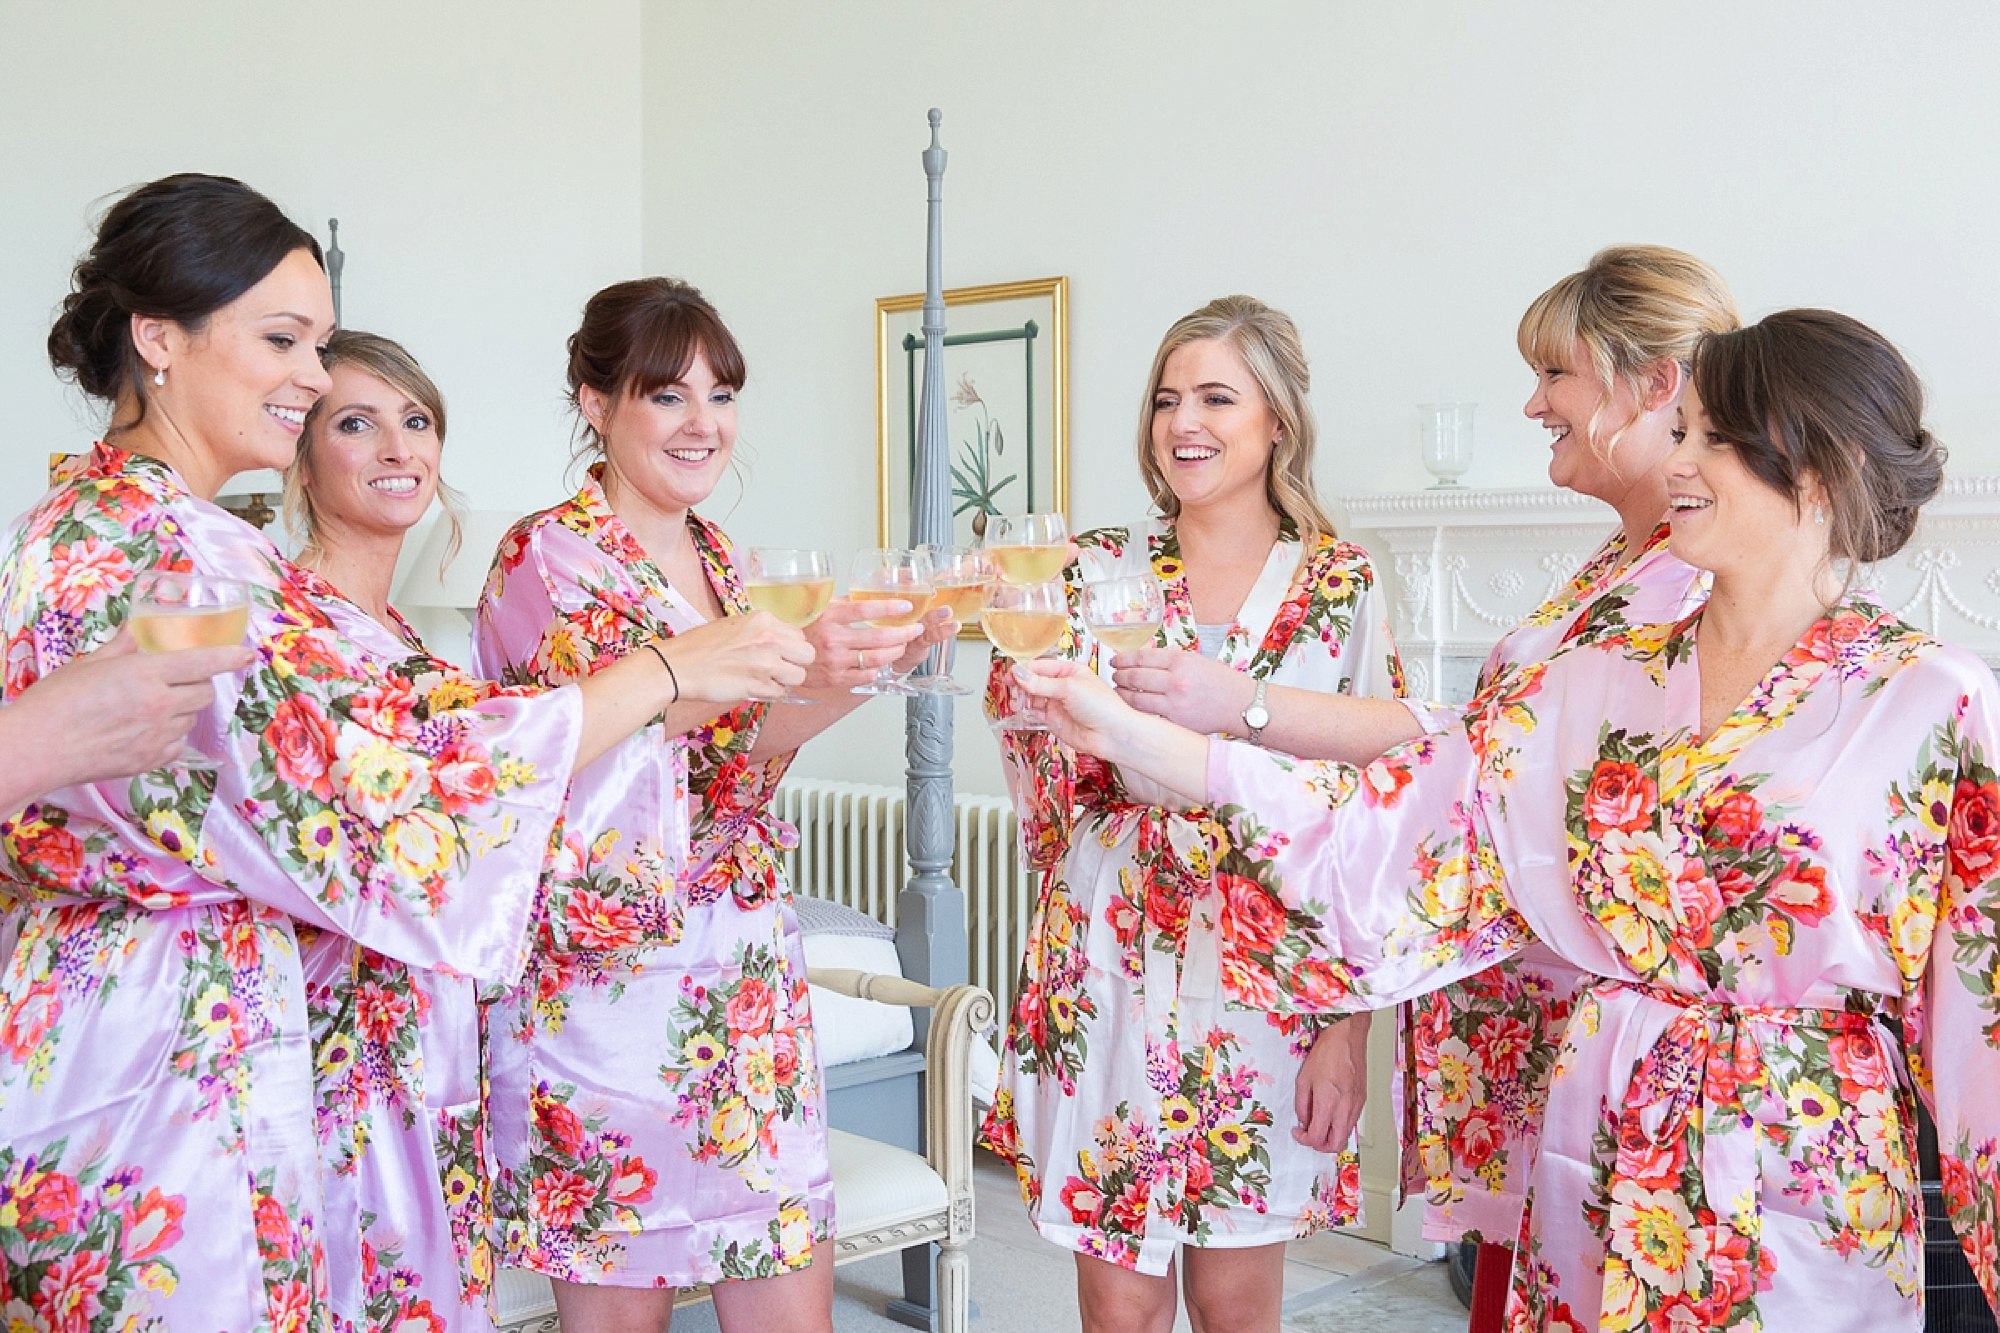 bride and bridesmaids make a toast with champagne in Pynes house in devon